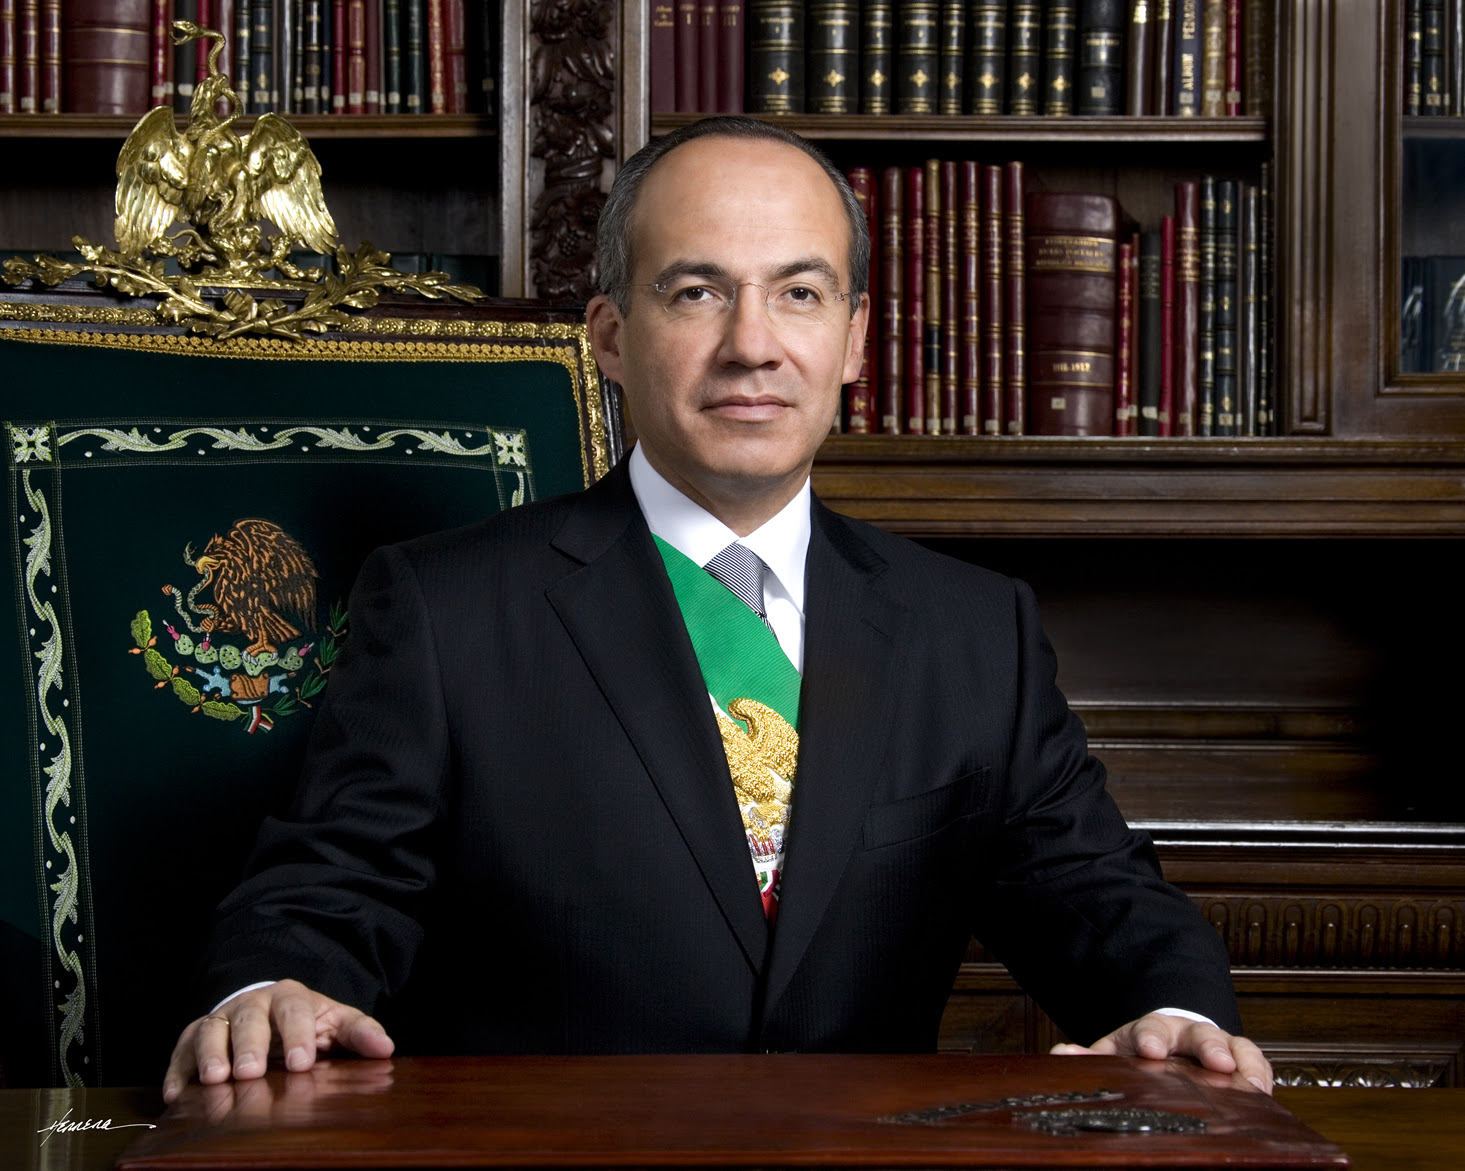 Image result for president calderon mexico images